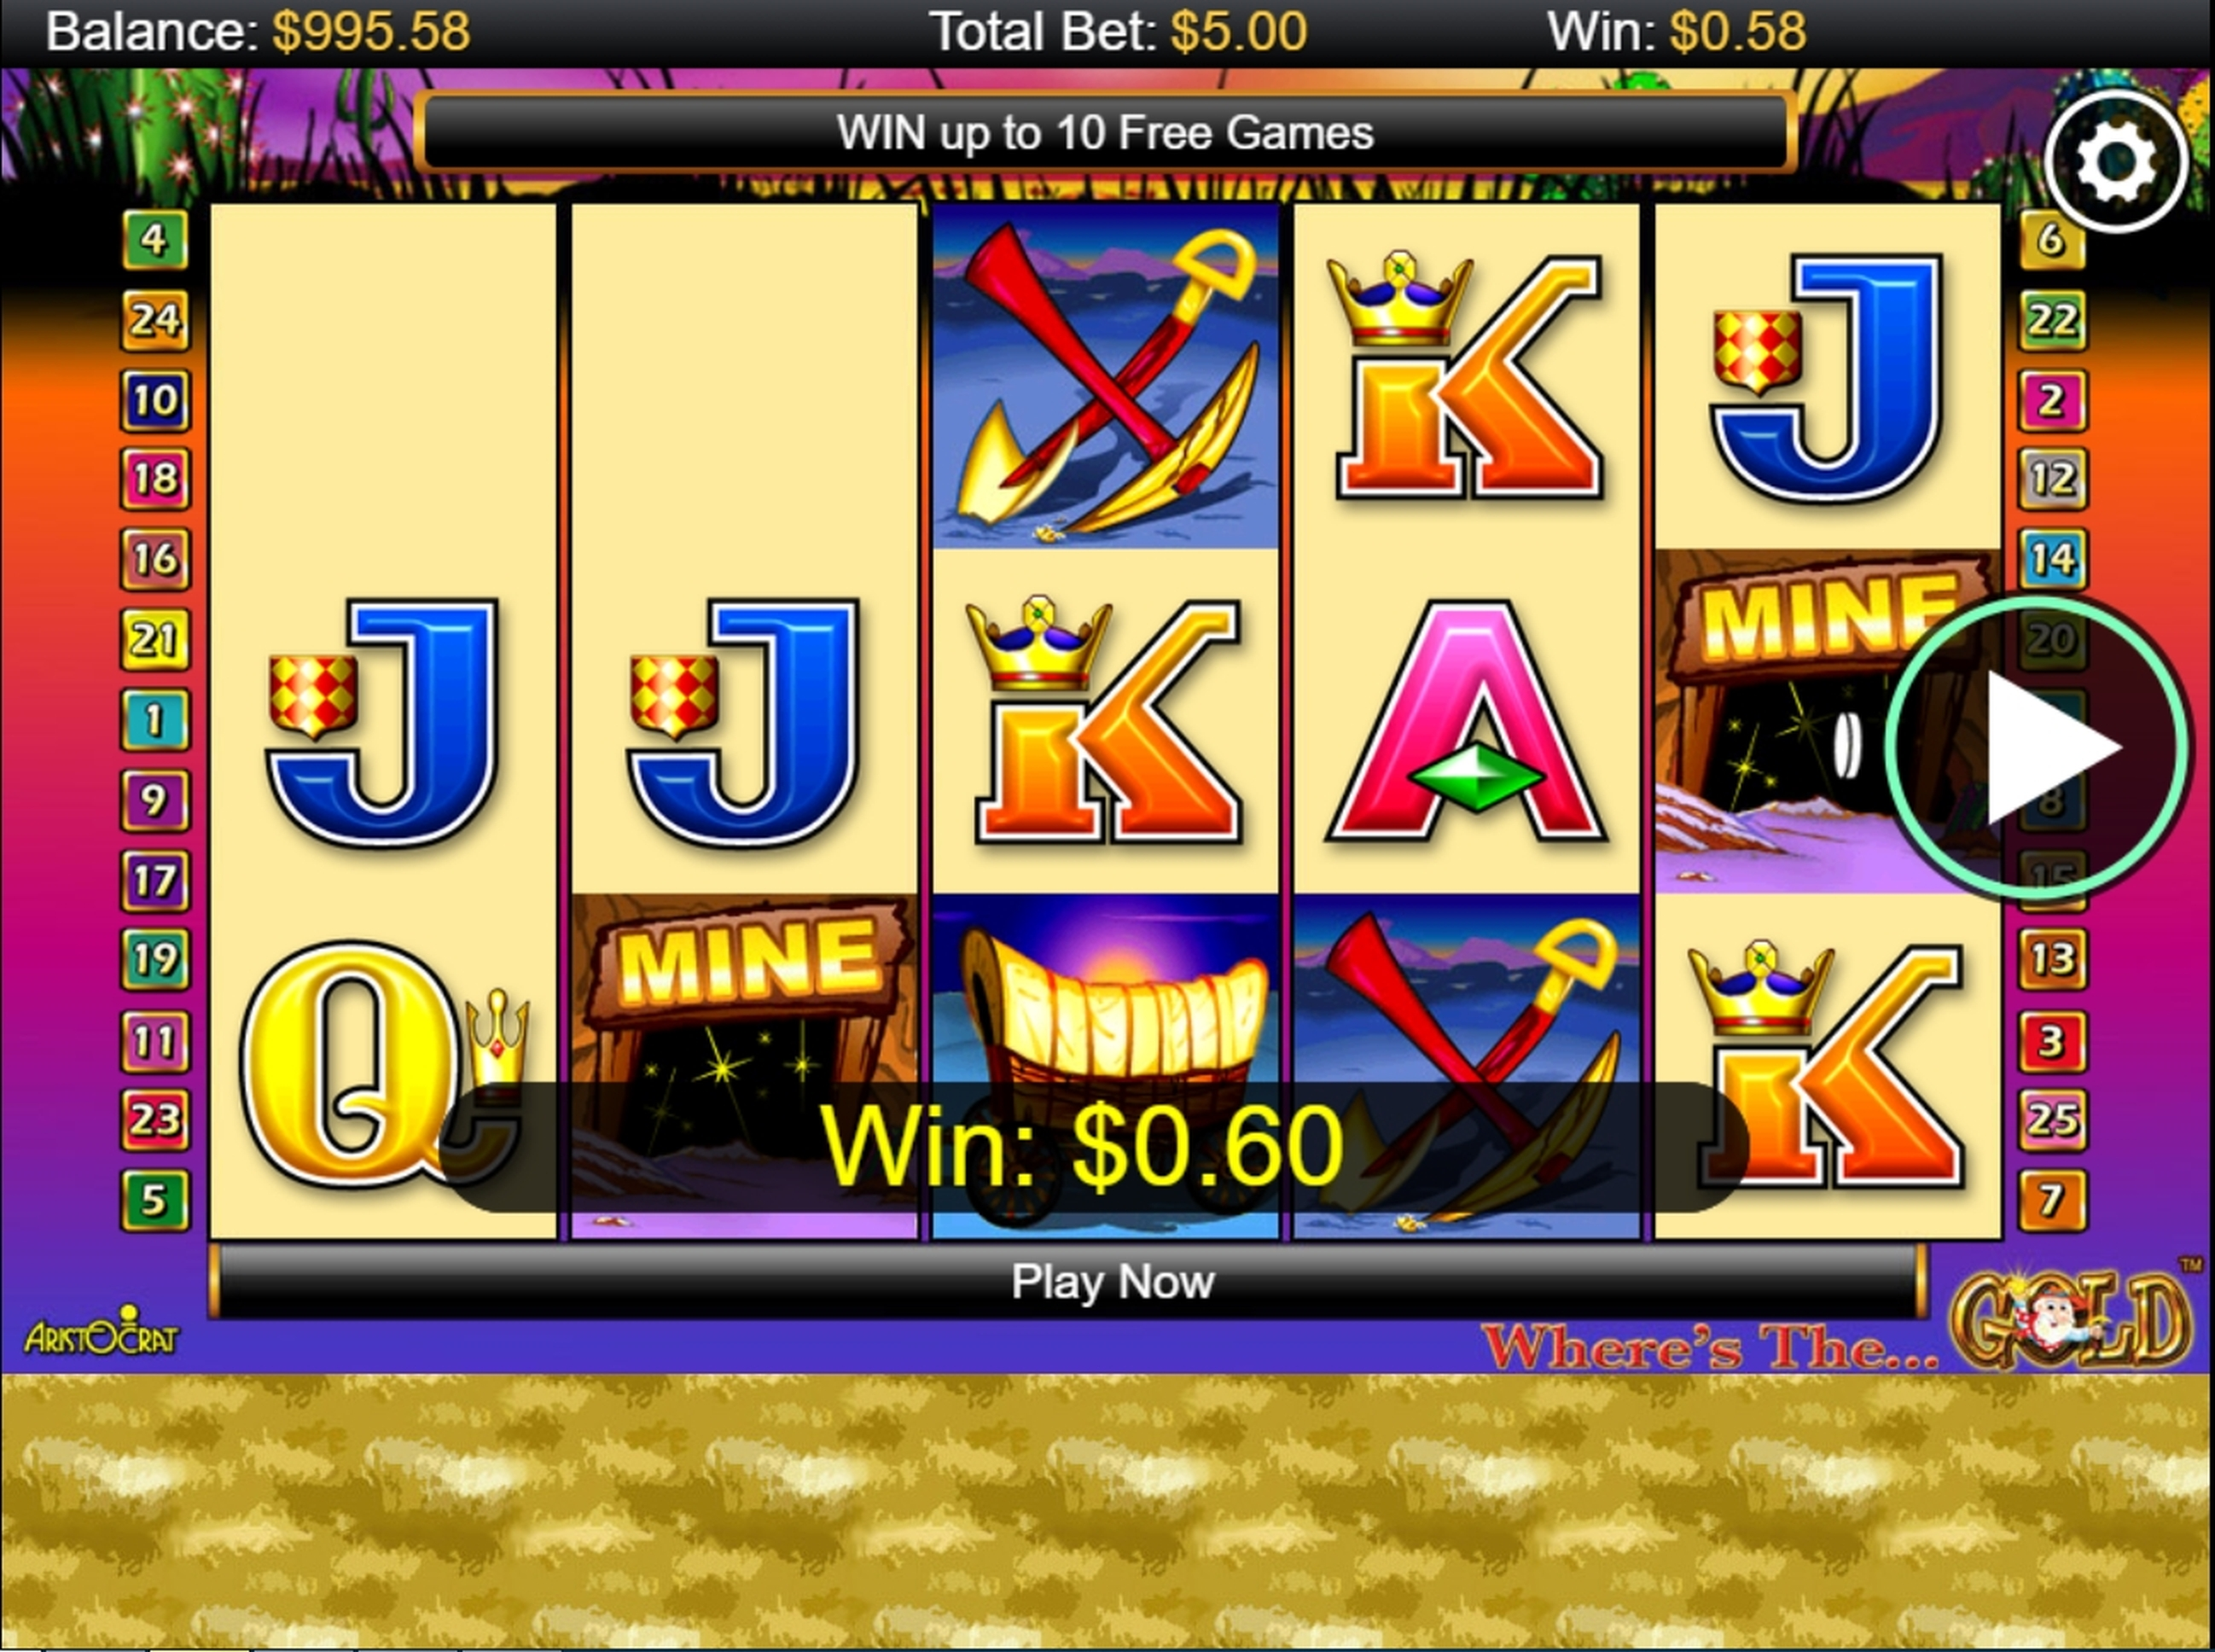 Win Money in Where's The Gold Free Slot Game by Aristocrat